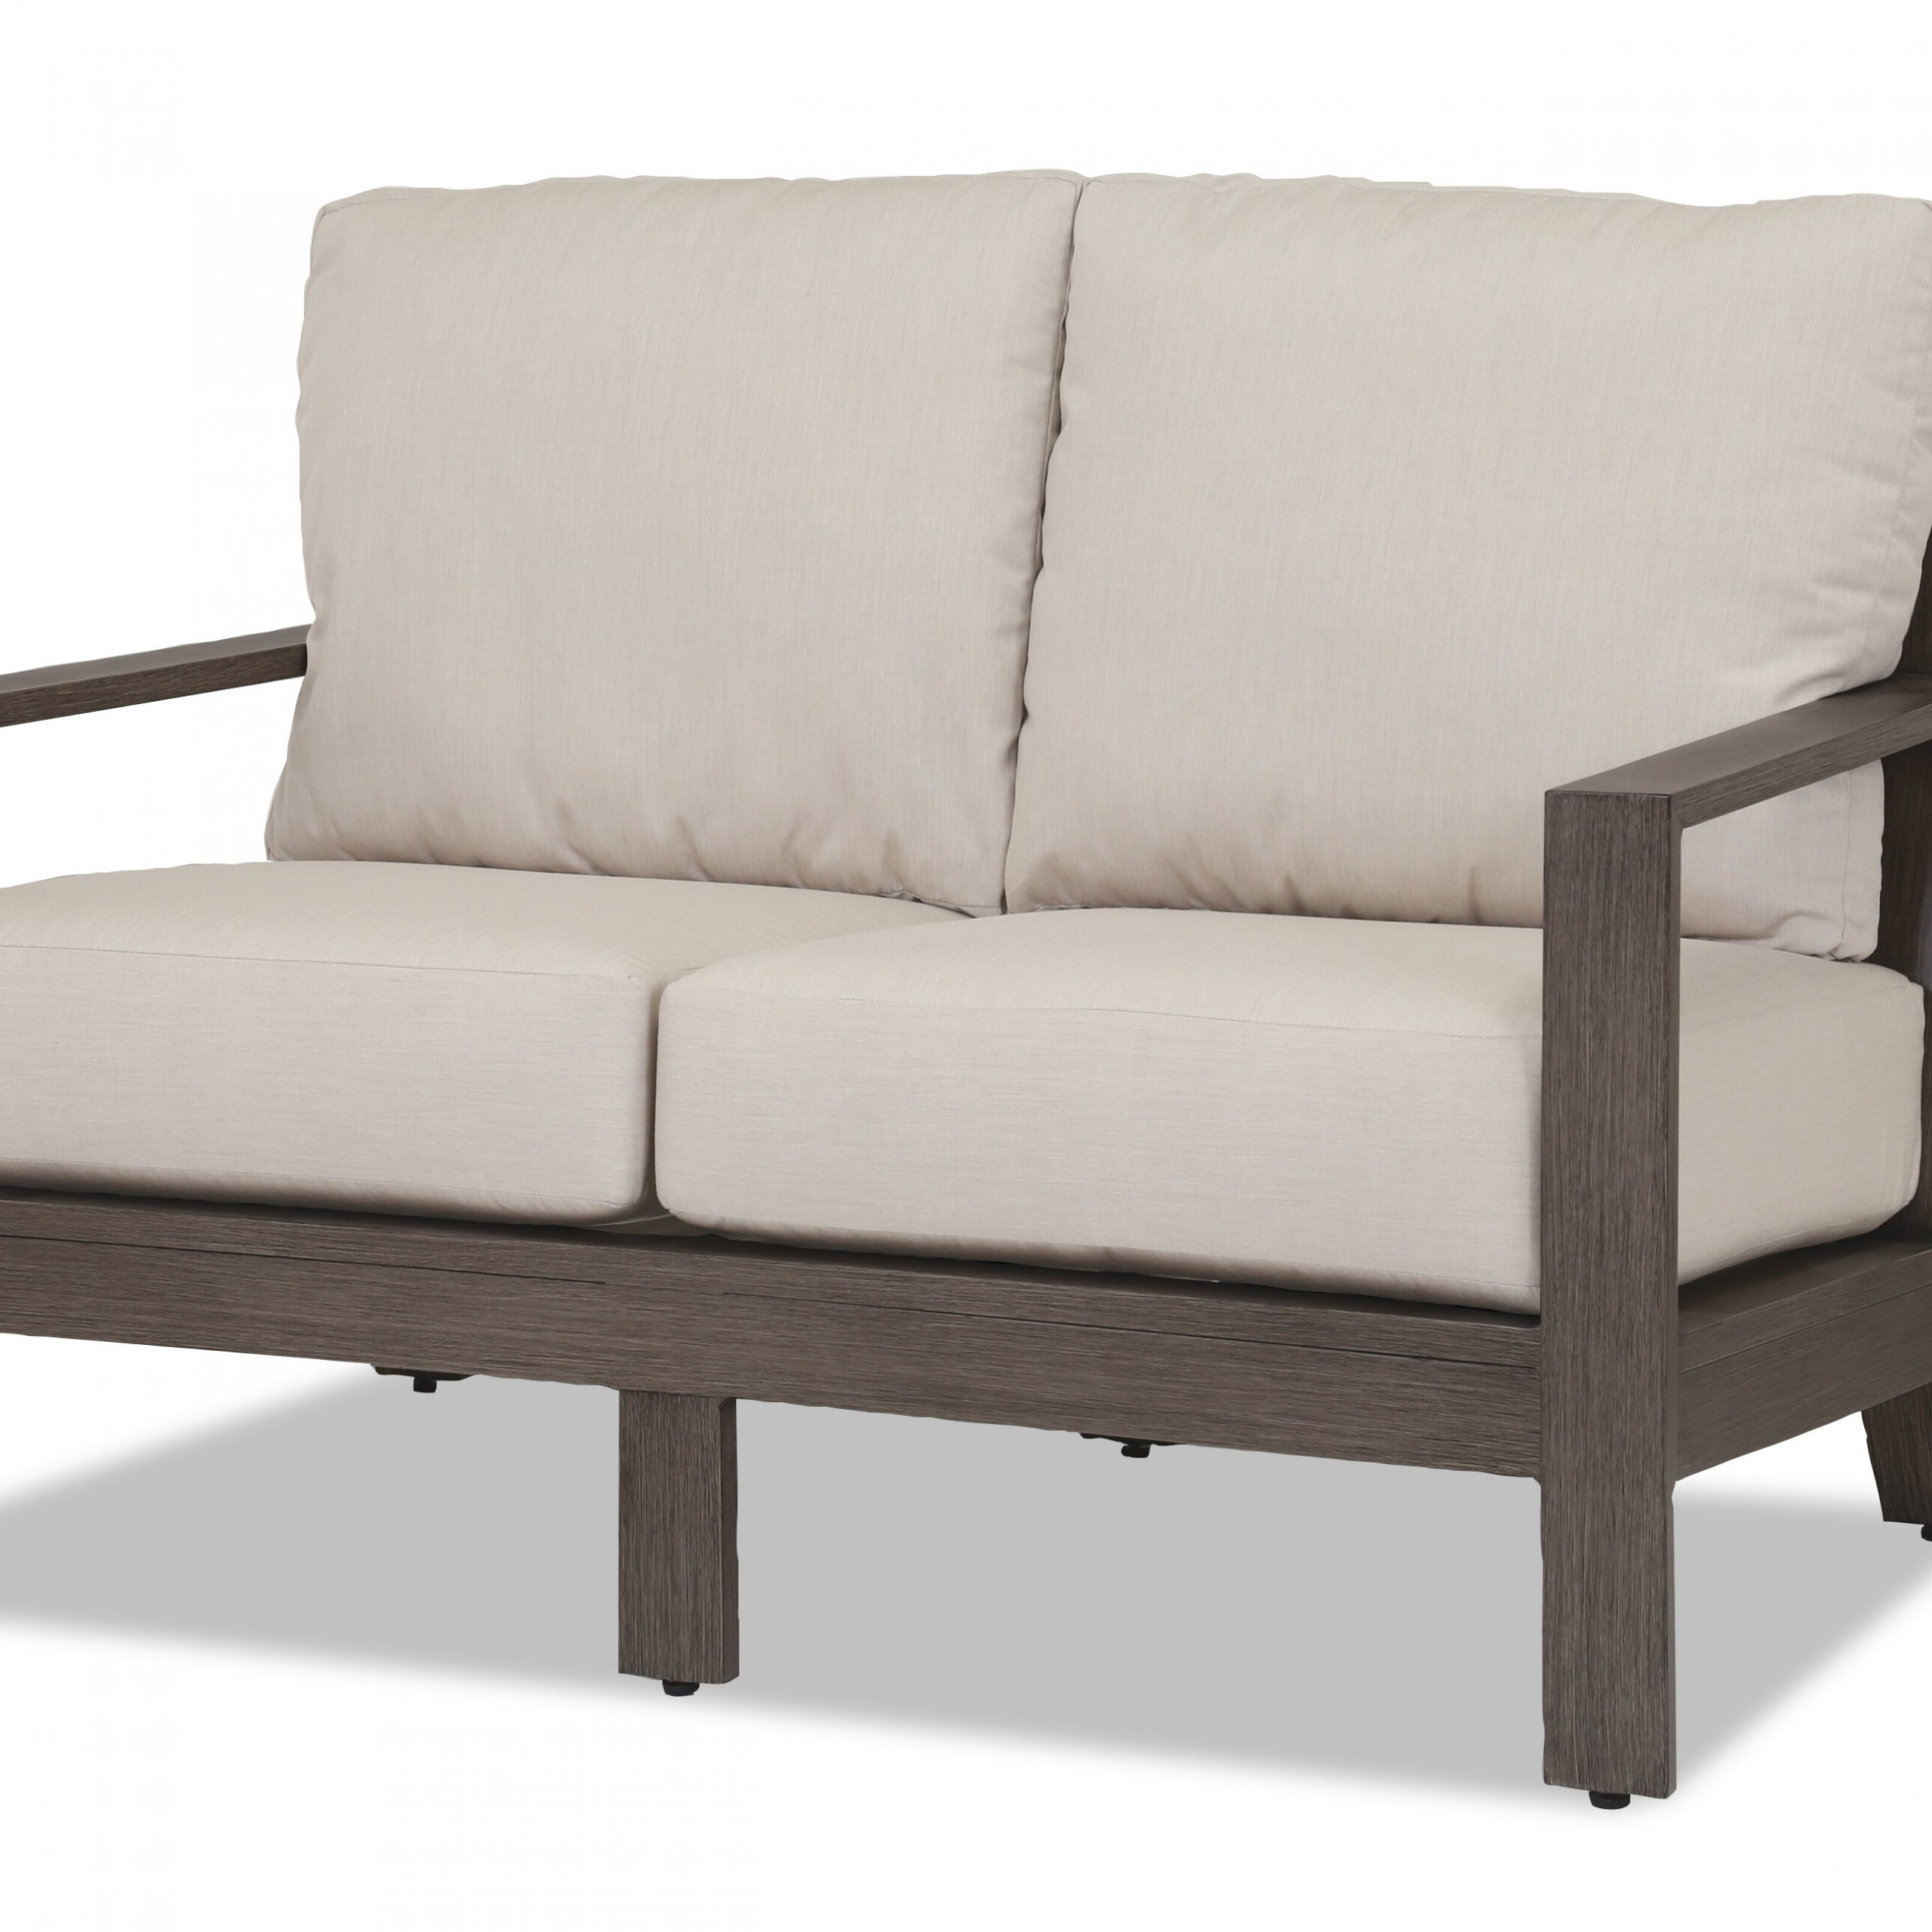 Most Recent Laguna Loveseat With Cushions Throughout Saleem Loveseats With Cushions (View 9 of 25)